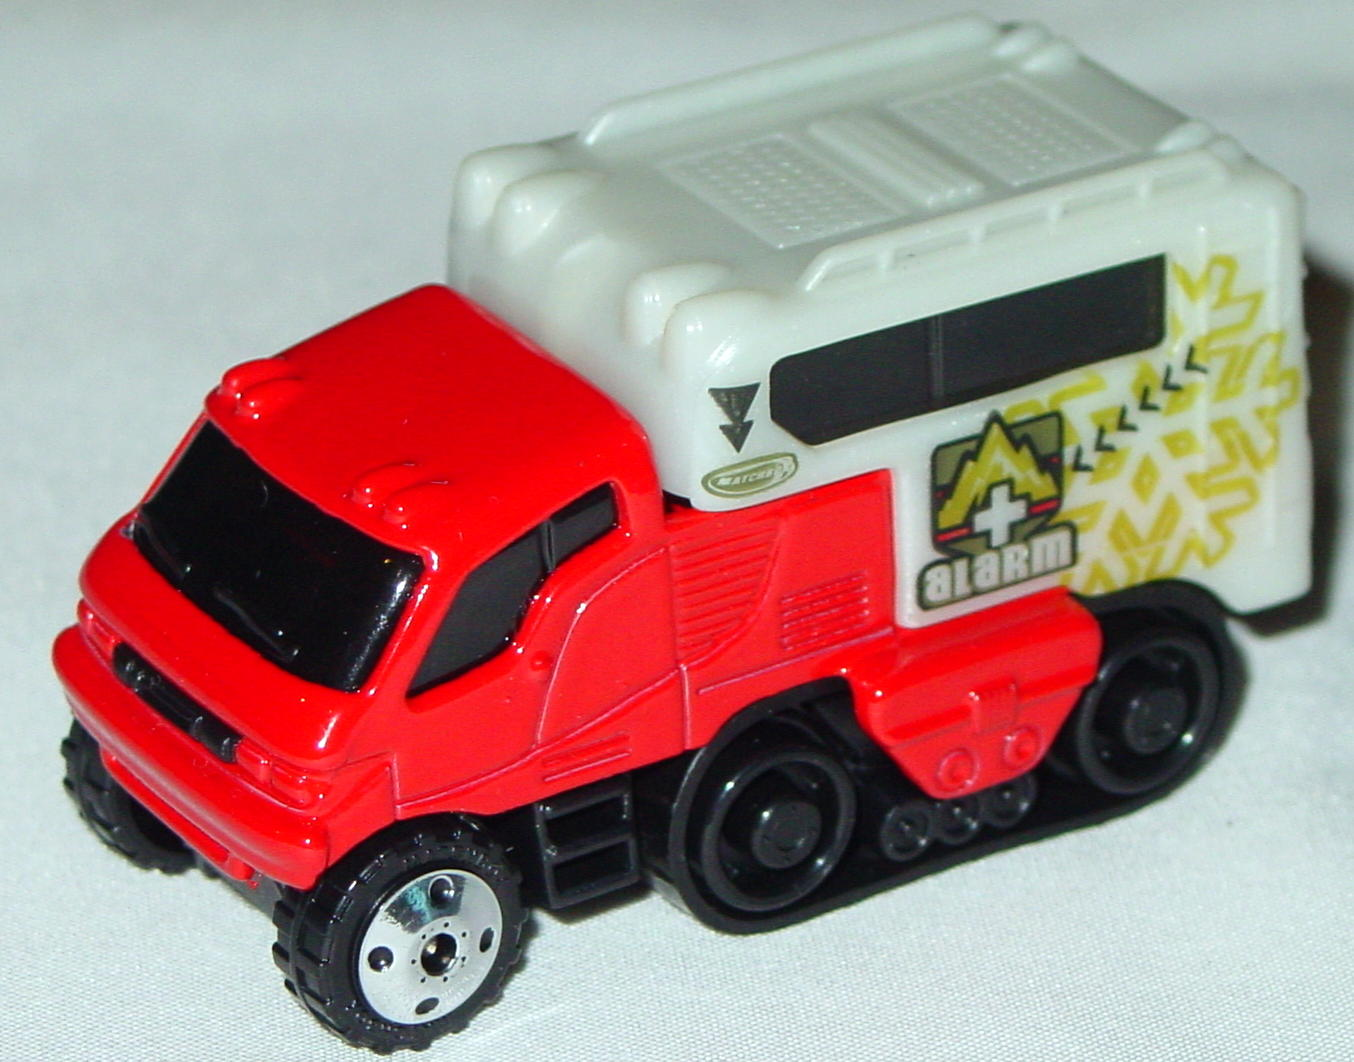 Offshore SuperFast 06 I 11 - Arctic Track Truck Red p-white Alarm made in China